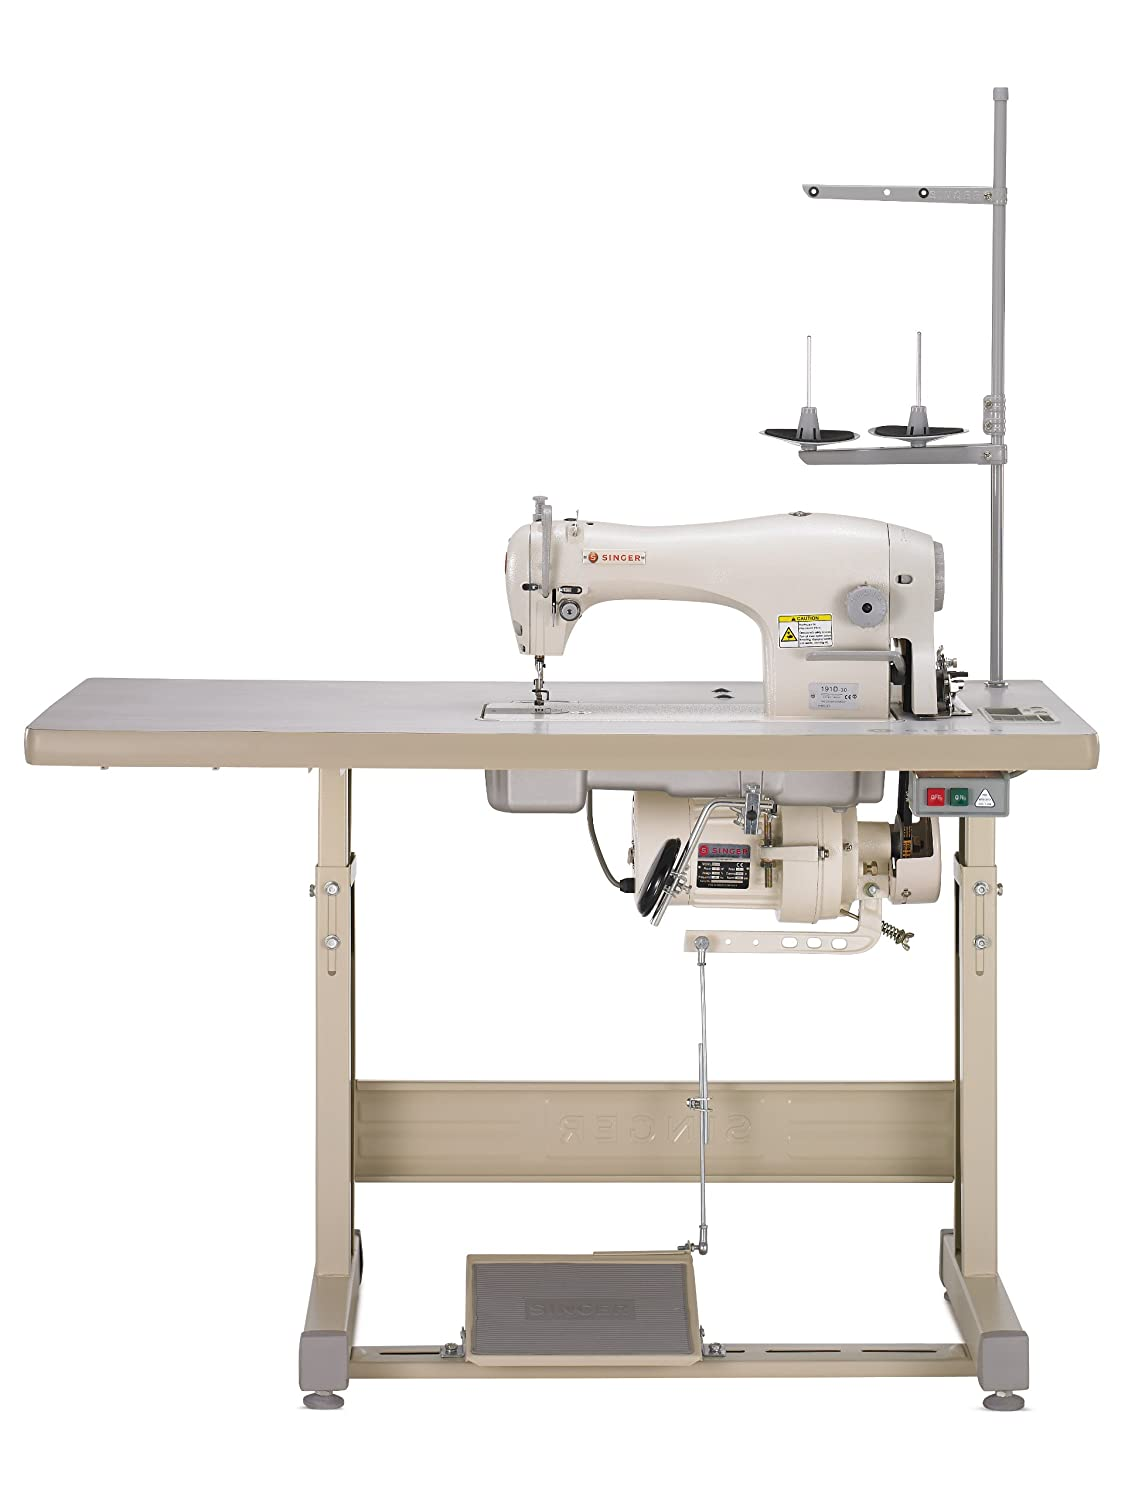 Amazon.com: Singer 191D-30 Complete Industrial Commercial-Grade Straight-Stitch  Sewing Machine Ideal for Medium to Heavy Fabrics: Arts, Crafts & Sewing